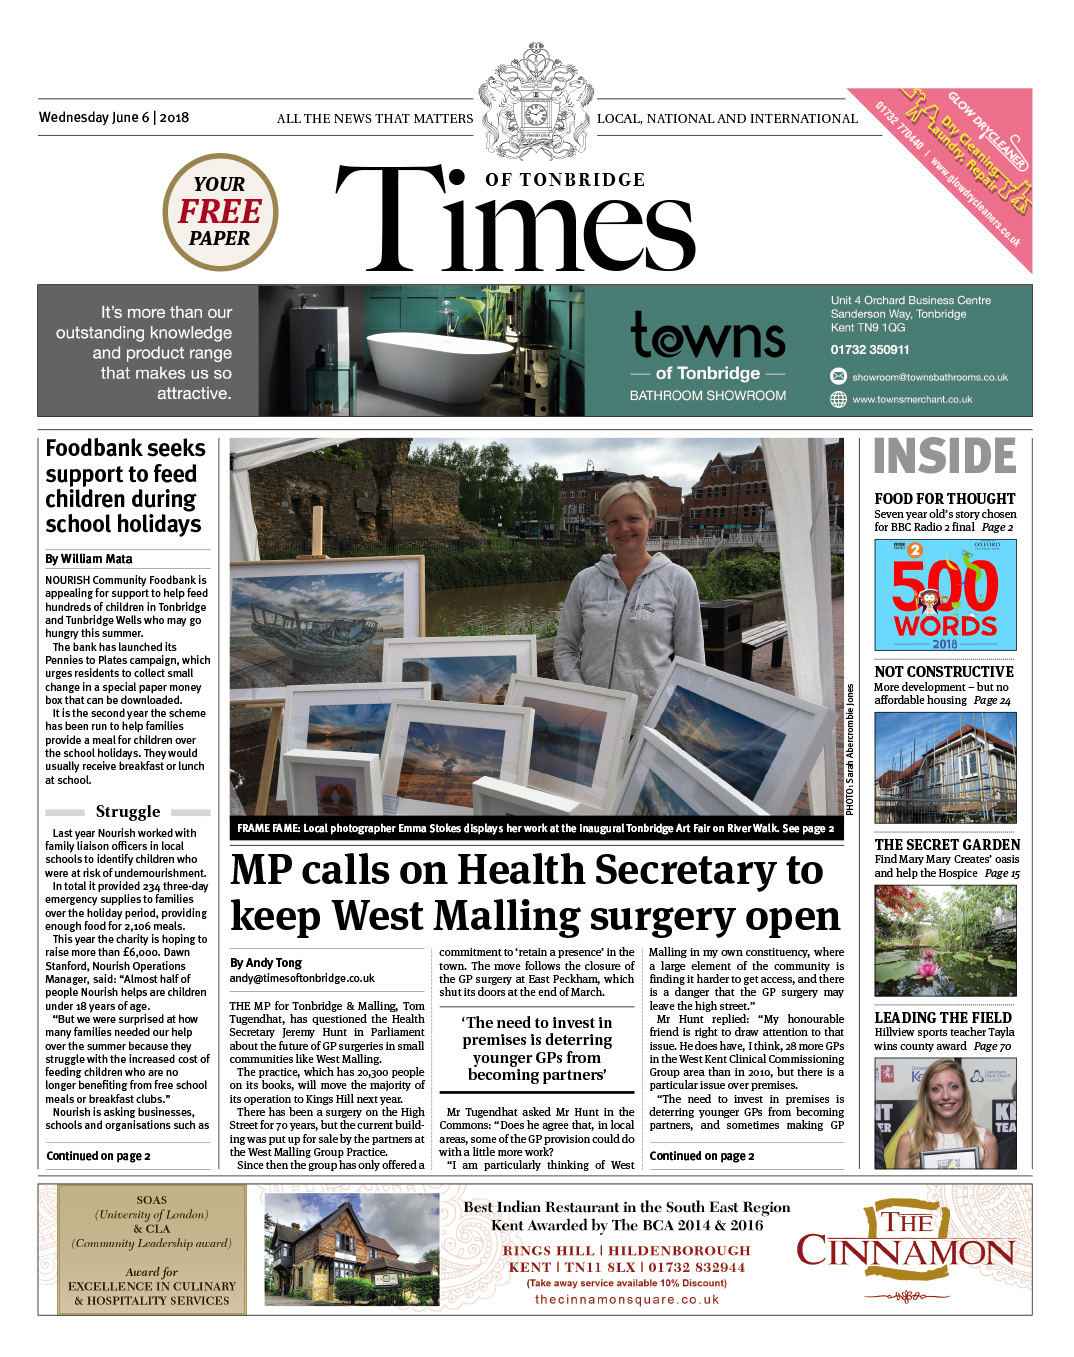 Read the Times of Tonbridge 6th June 2018